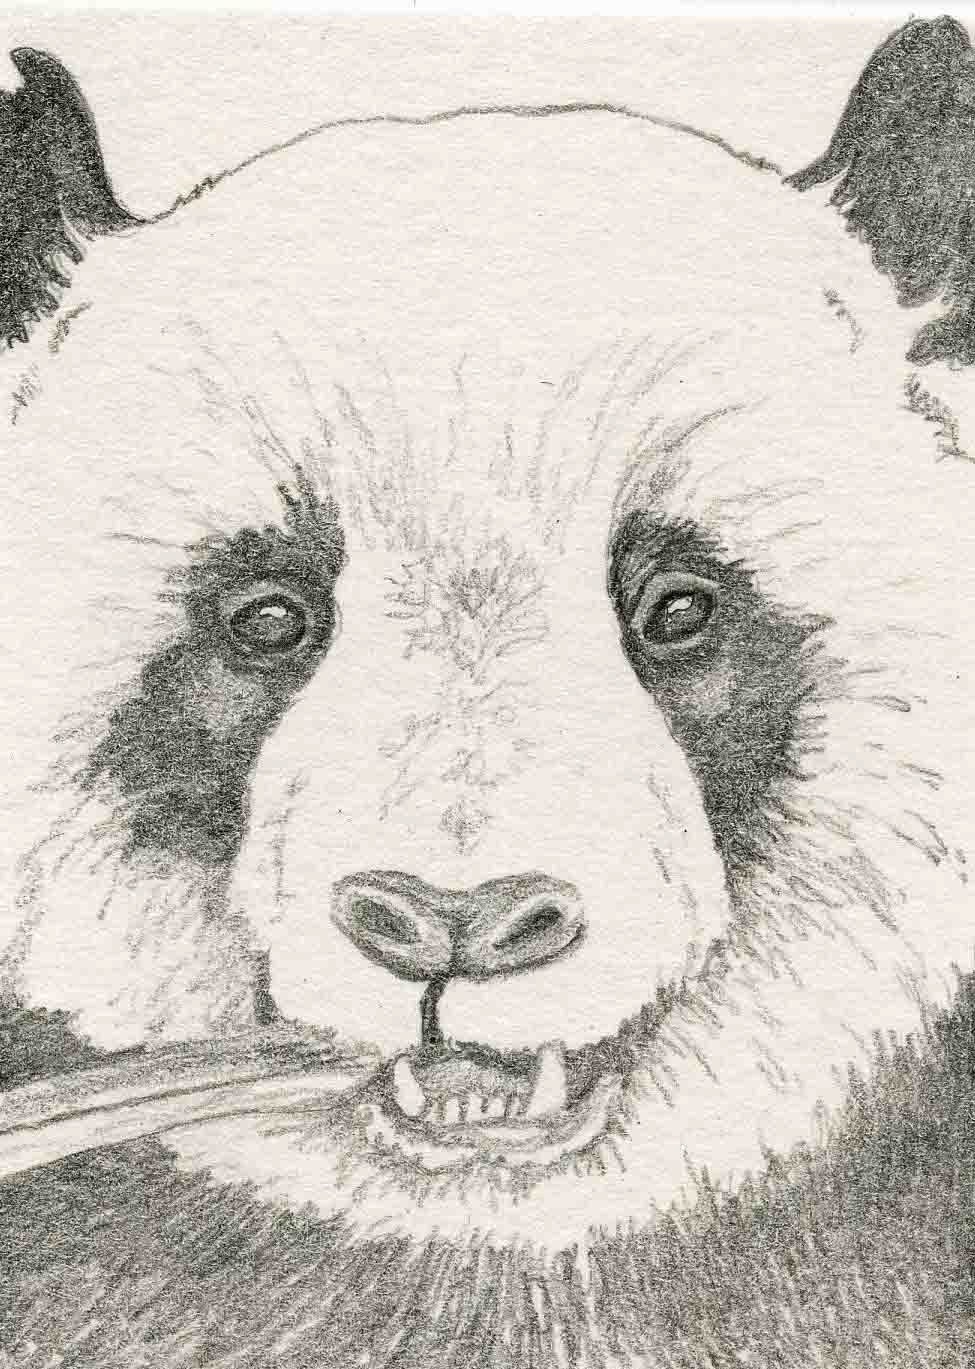 Request a custom order and have something made just for you Panda Drawing In Pencil